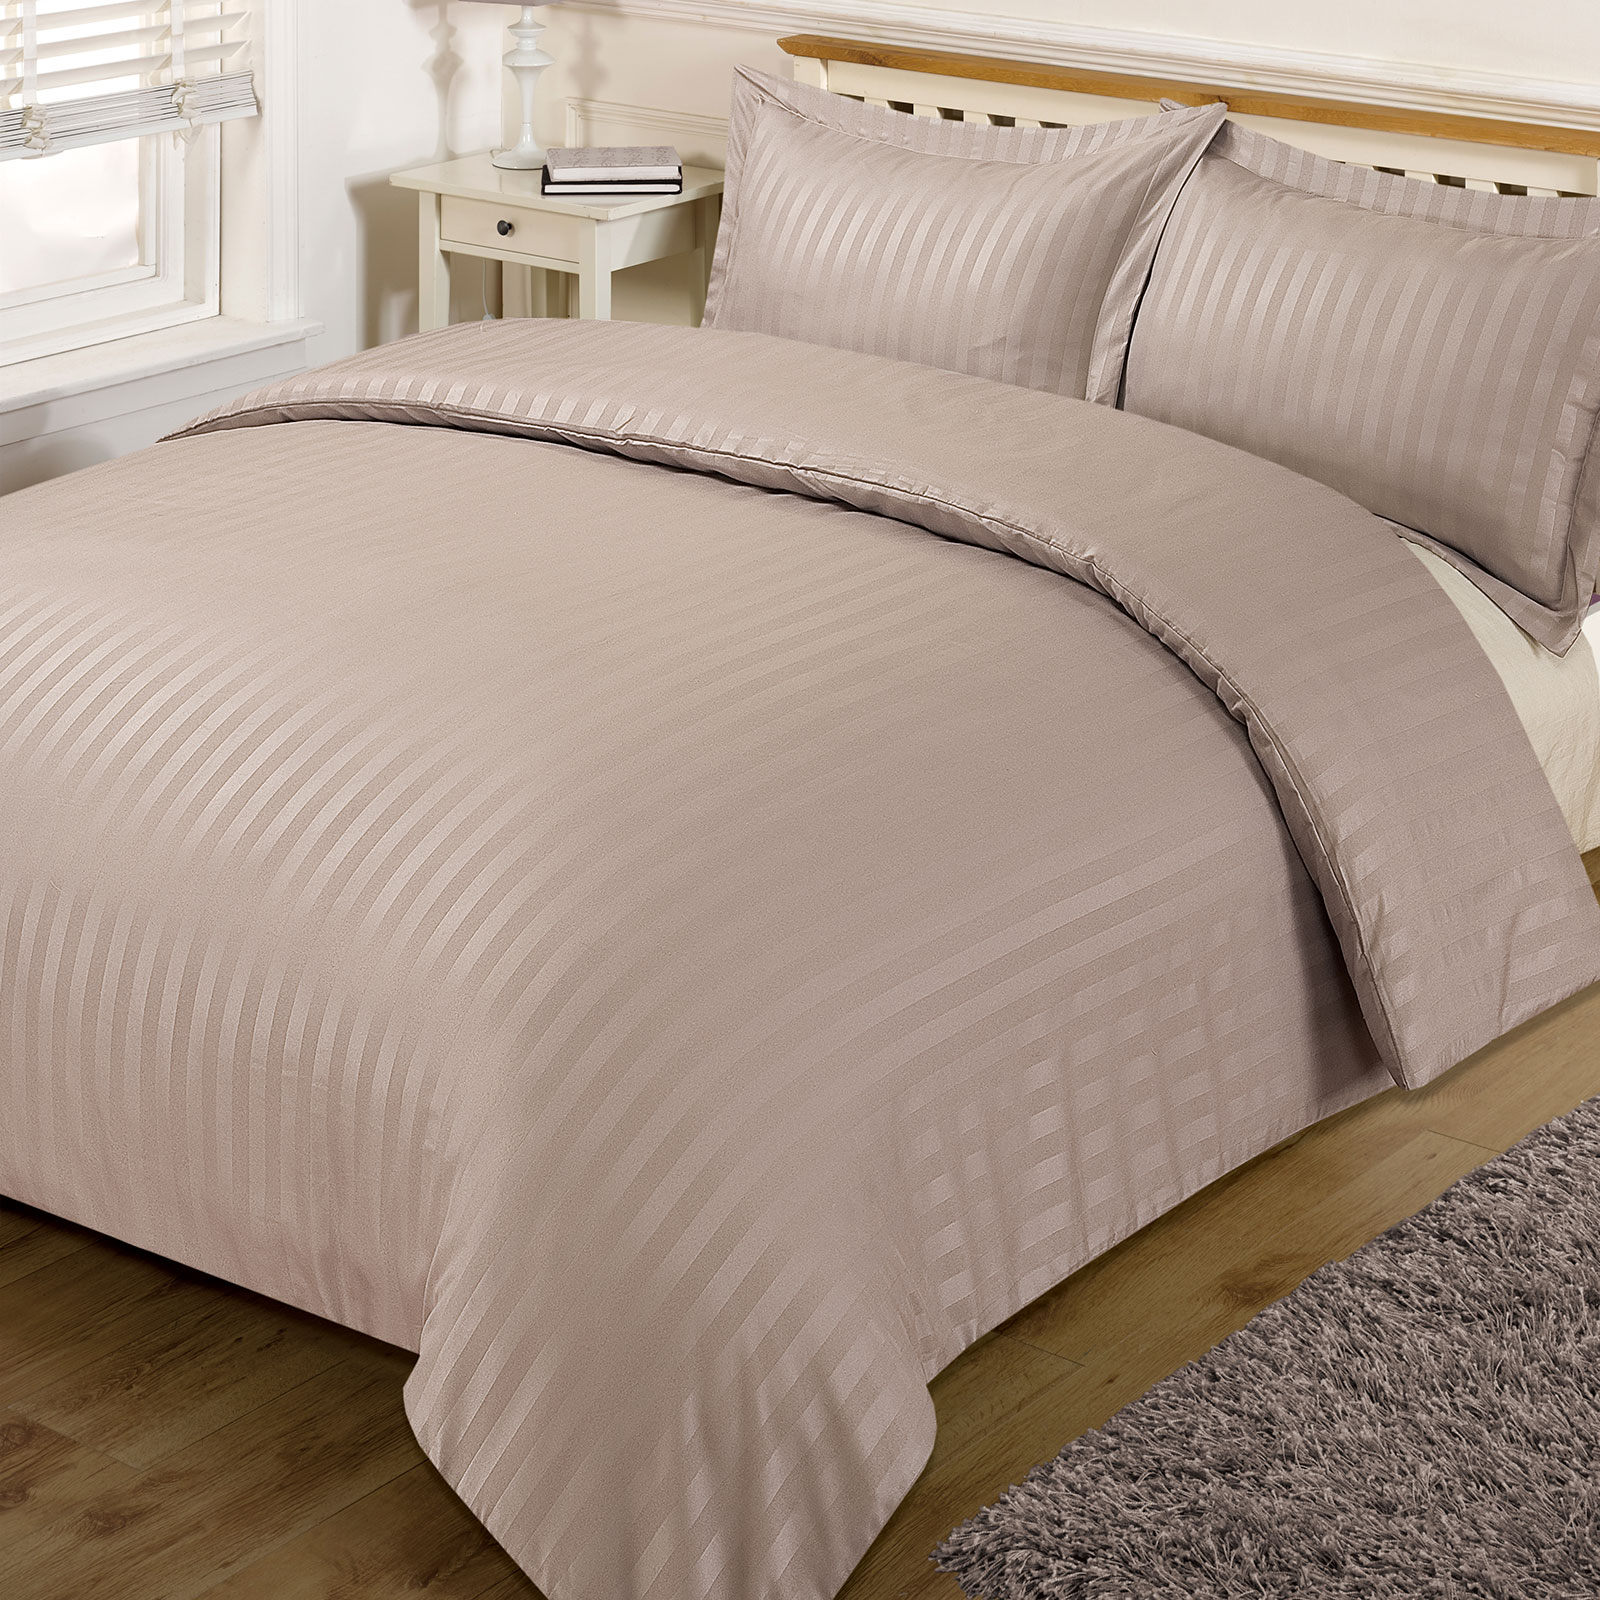 Analogy: duvet is to duvet cover as pillow is to pillowcase. A duvet cover is a protective layer that slips over the duvet and has a closure. Because duvets and comforters can be expensive and difficult to clean, duvet covers are useful because they protect your comforter during use and are easily removed and easy to .